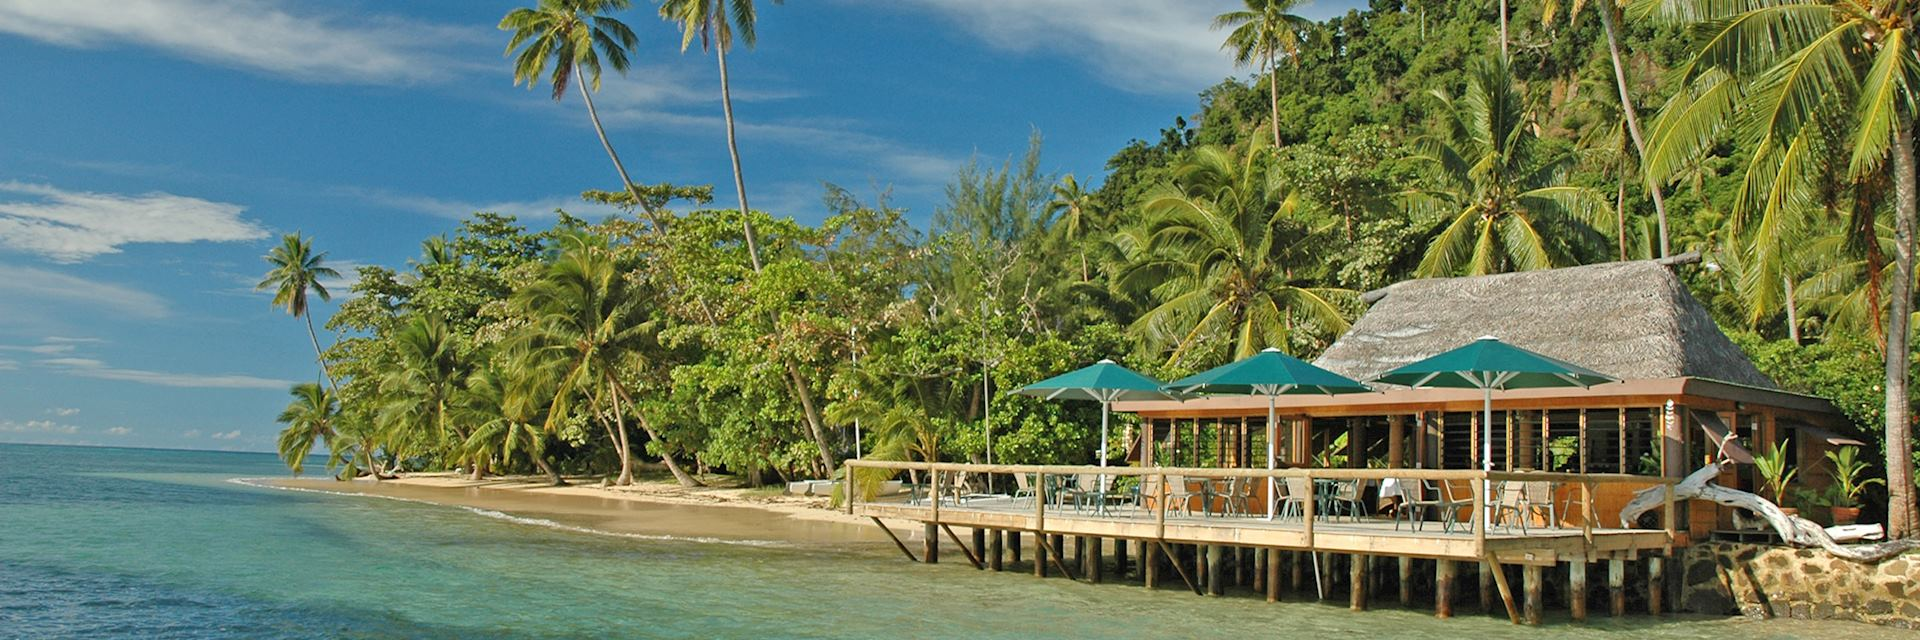 Matangi Private Island Resort, Taveuni, Fiji